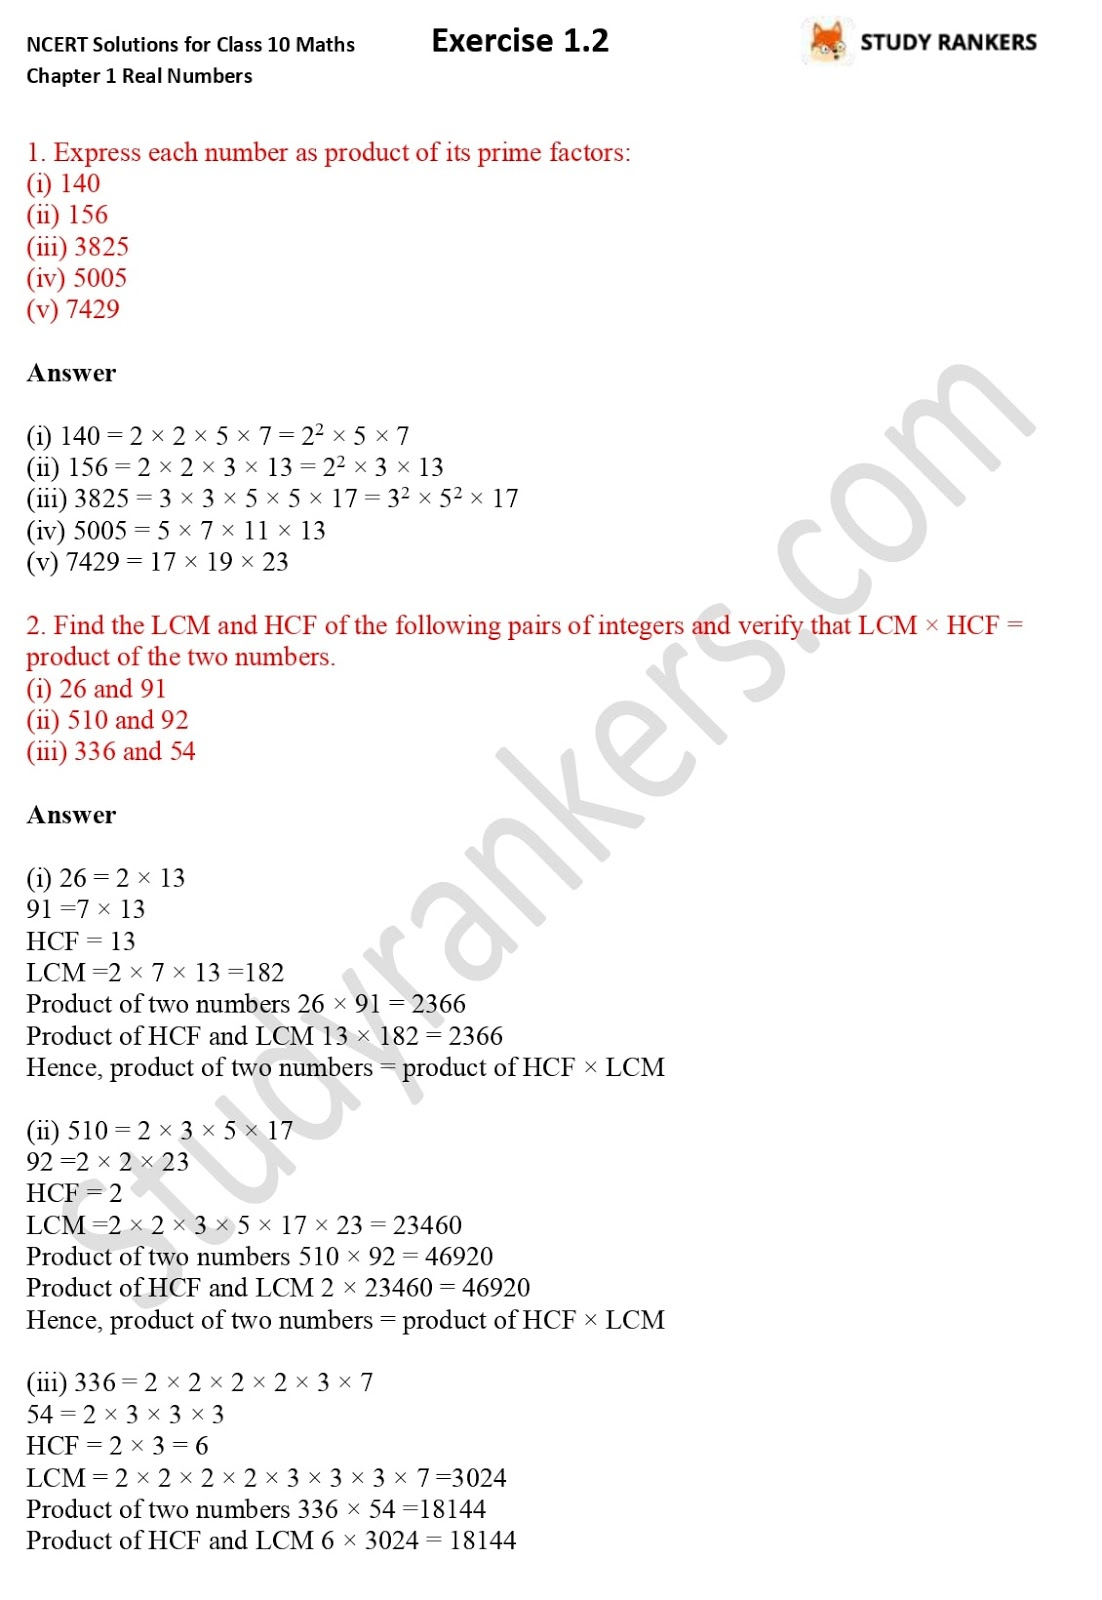 NCERT Solutions for Class 10 Maths Chapter 1 Real Numbers Exercise 1.2 1